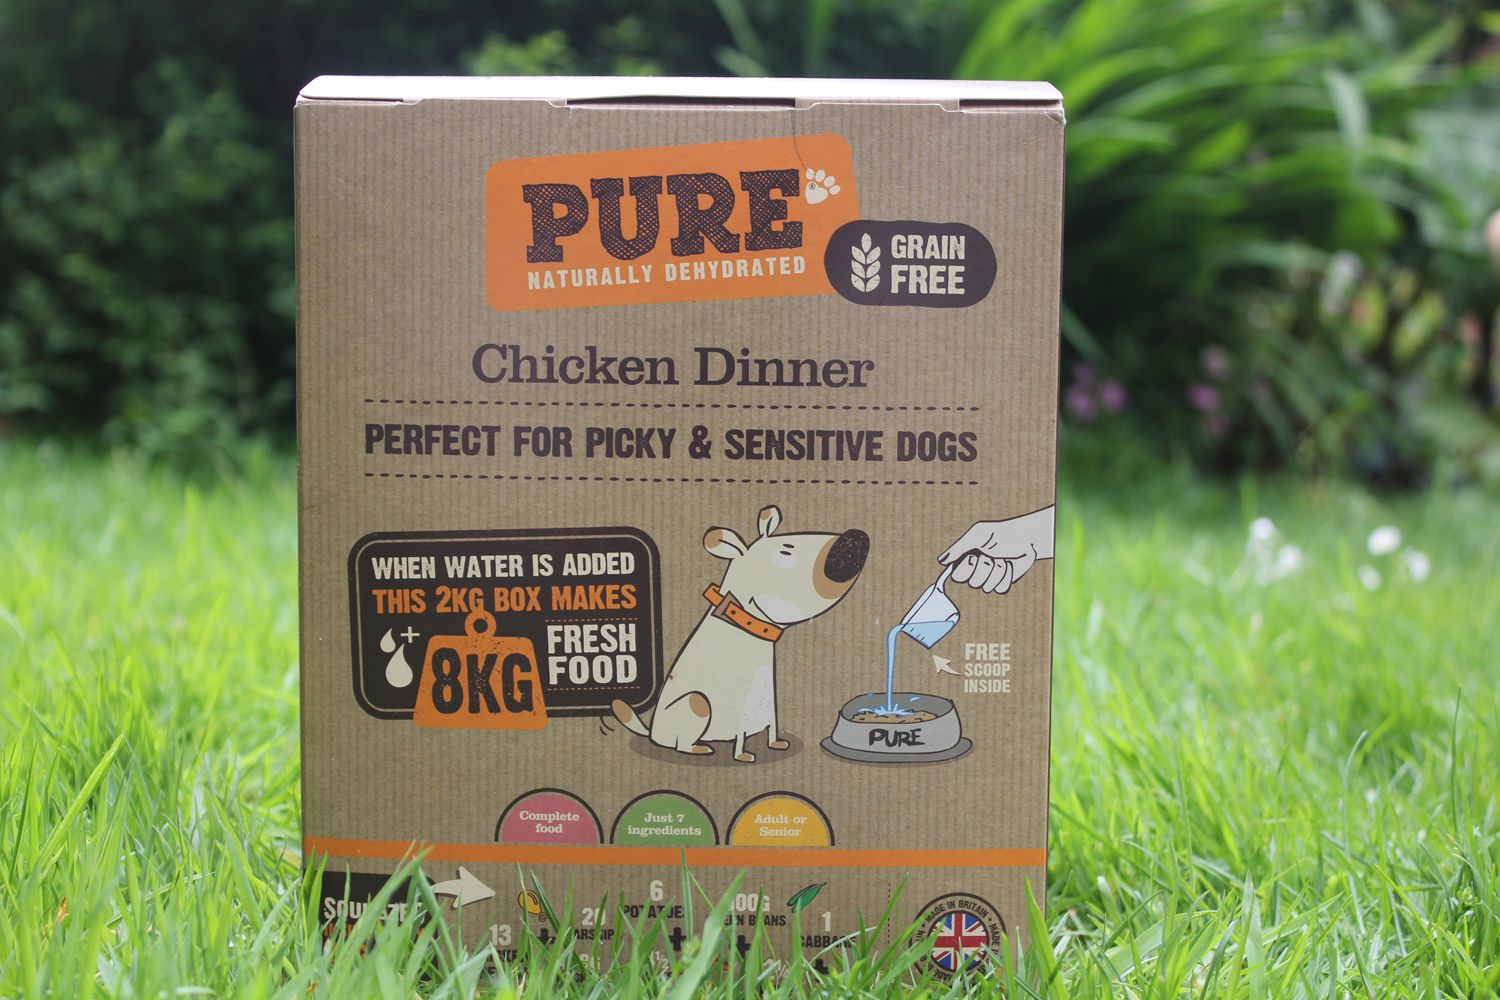 What We Tested Pure Dehydrated Pet Food Chicken Dinner Price